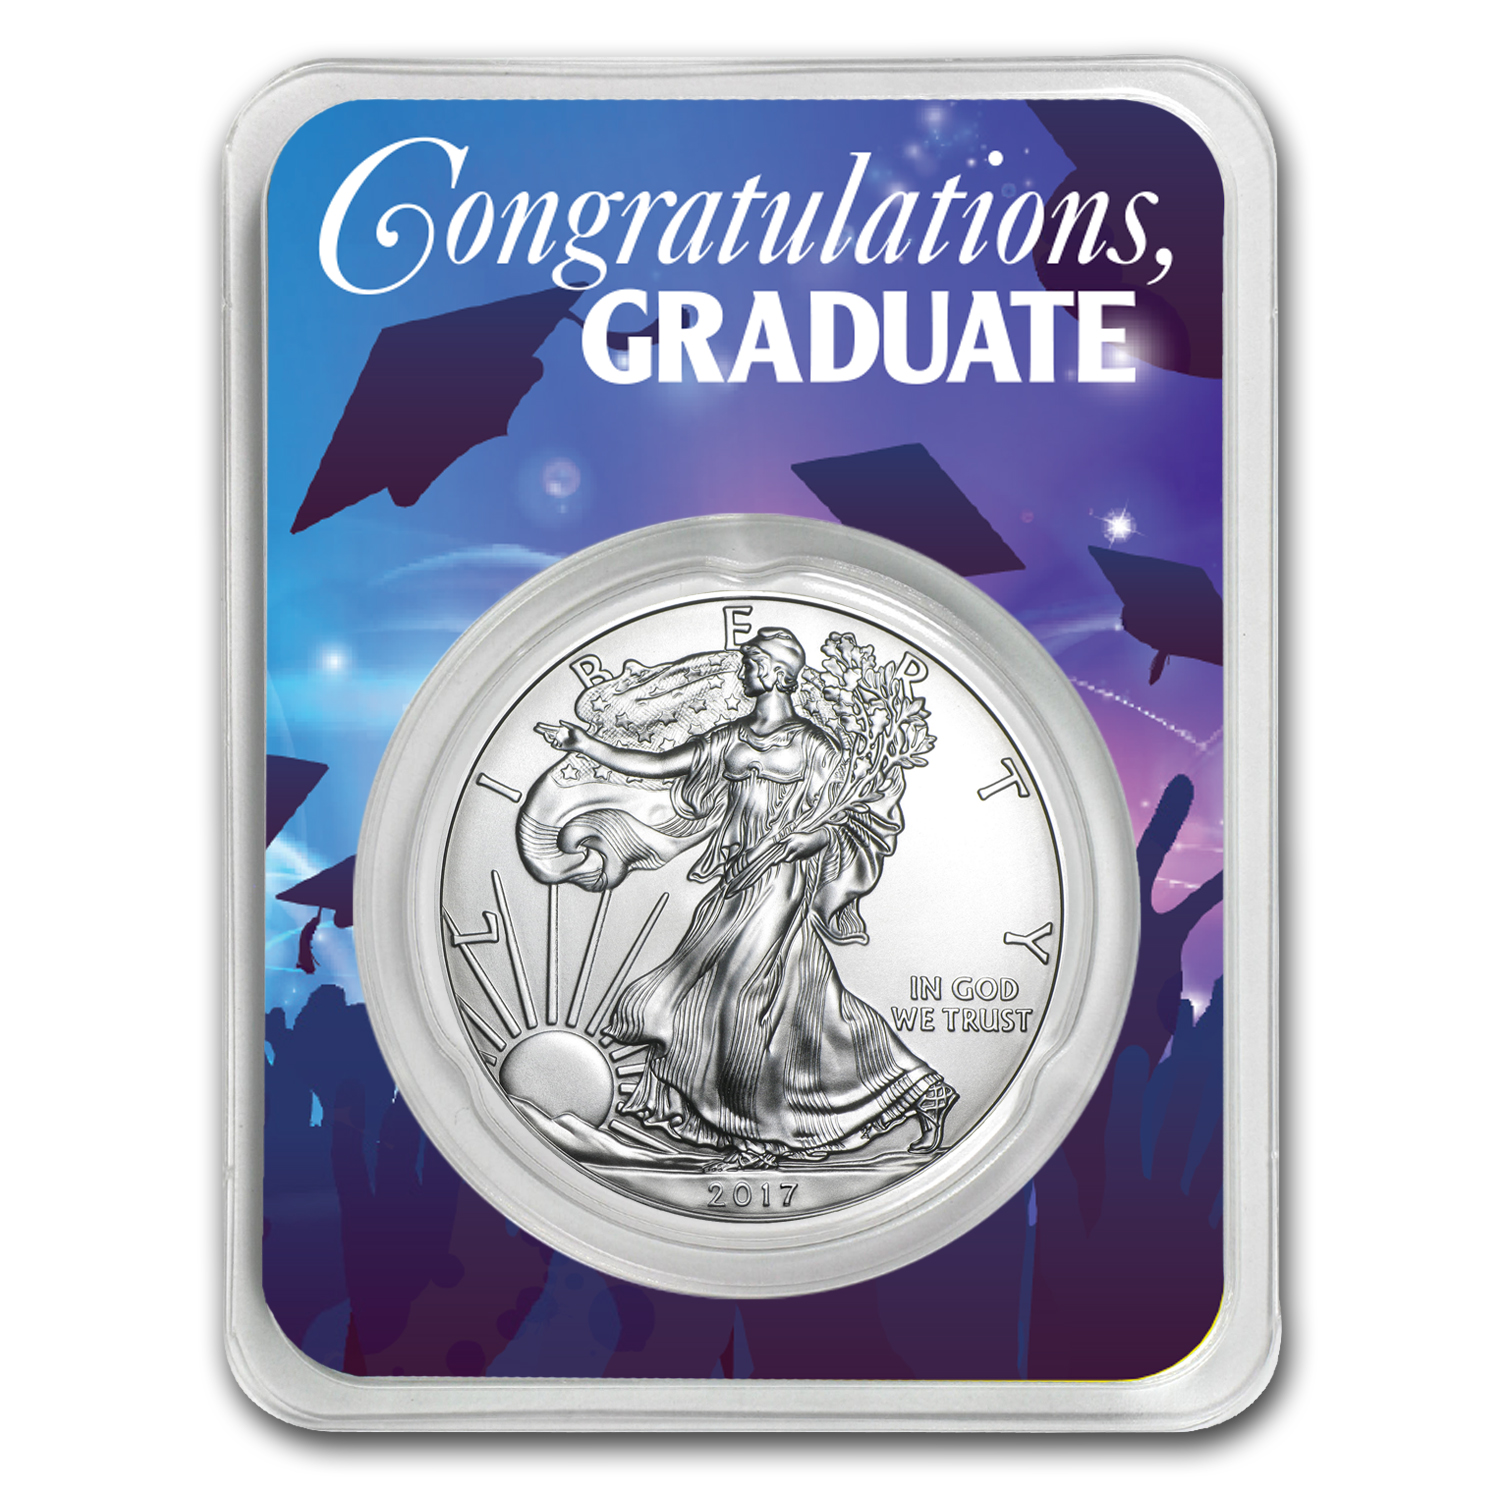 2017 1 oz Silver American Eagle - Graduation Party